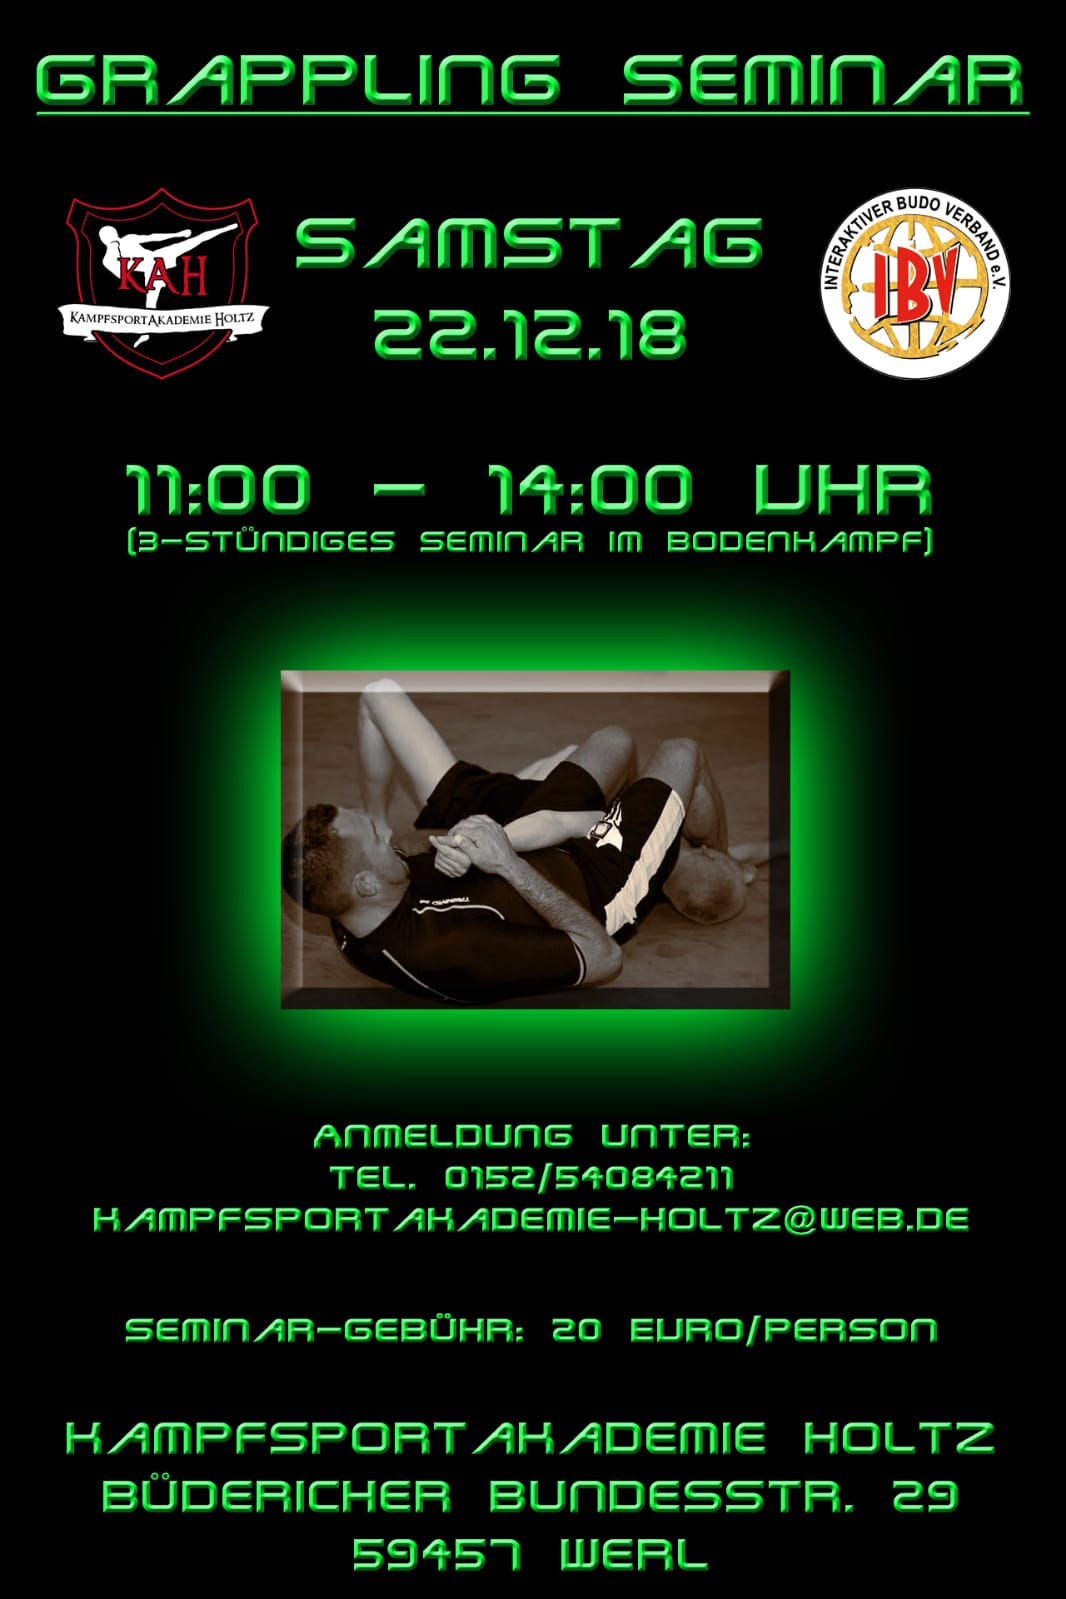 Grappling Seminar am 22.12.2018 in der Kampfsport-Akademie Holtz